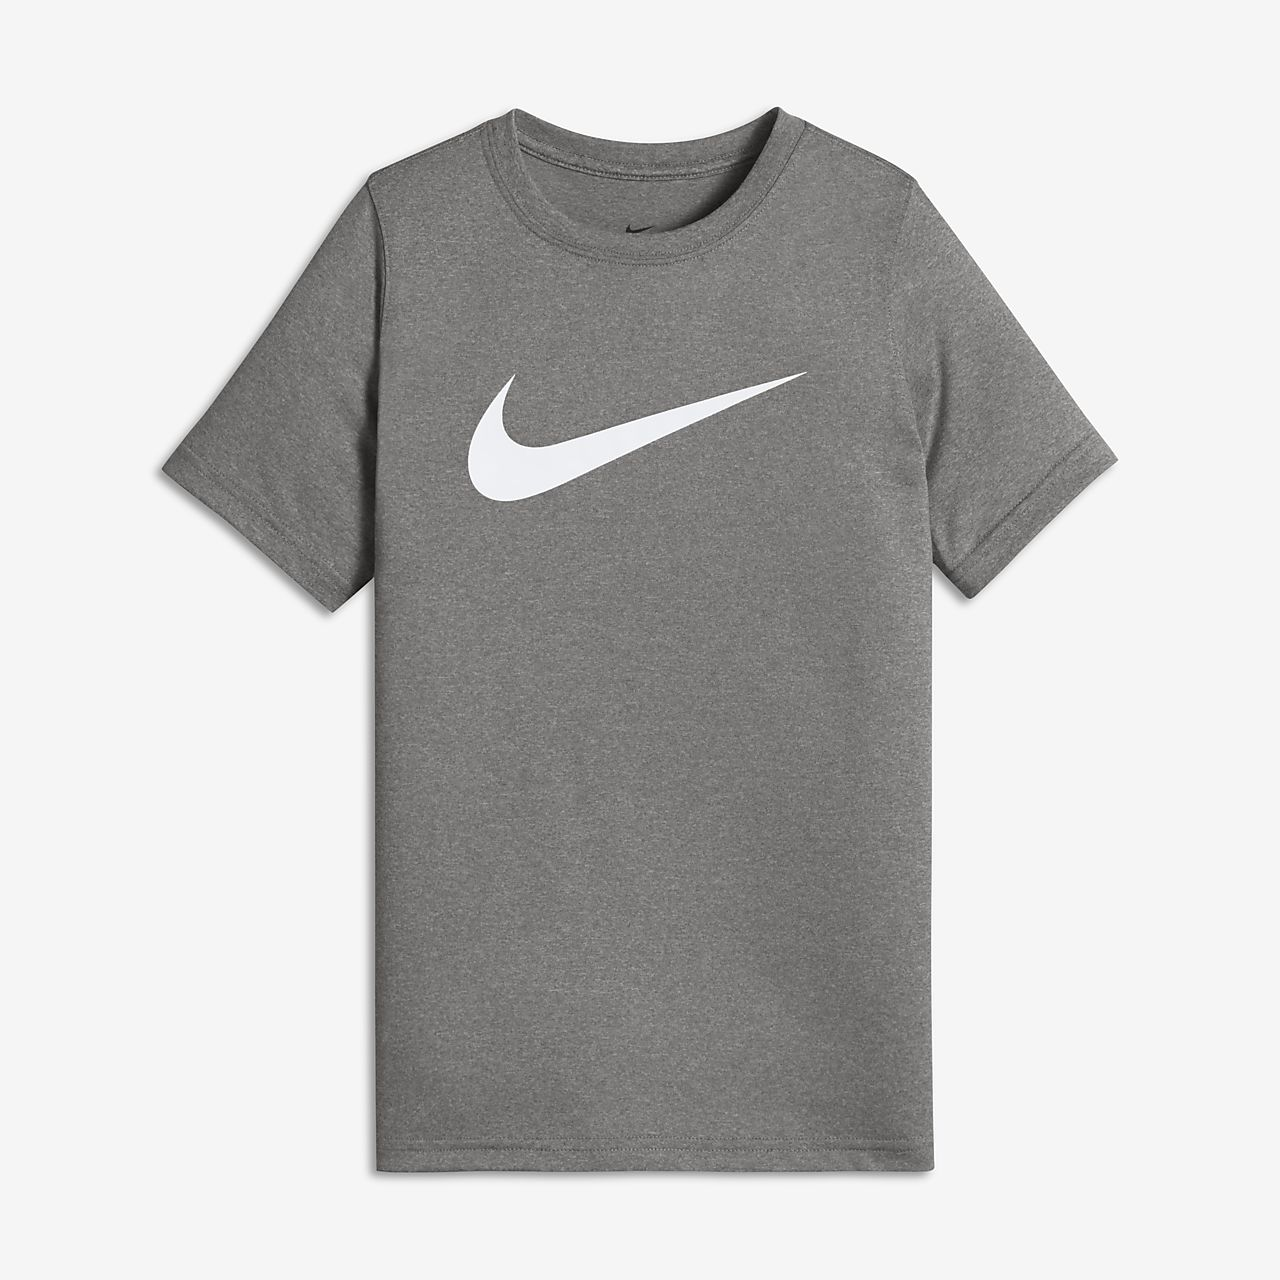 1370d60d3ccb73 Nike Dri-FIT Big Kids  (Boys ) Training T-Shirt. Nike.com